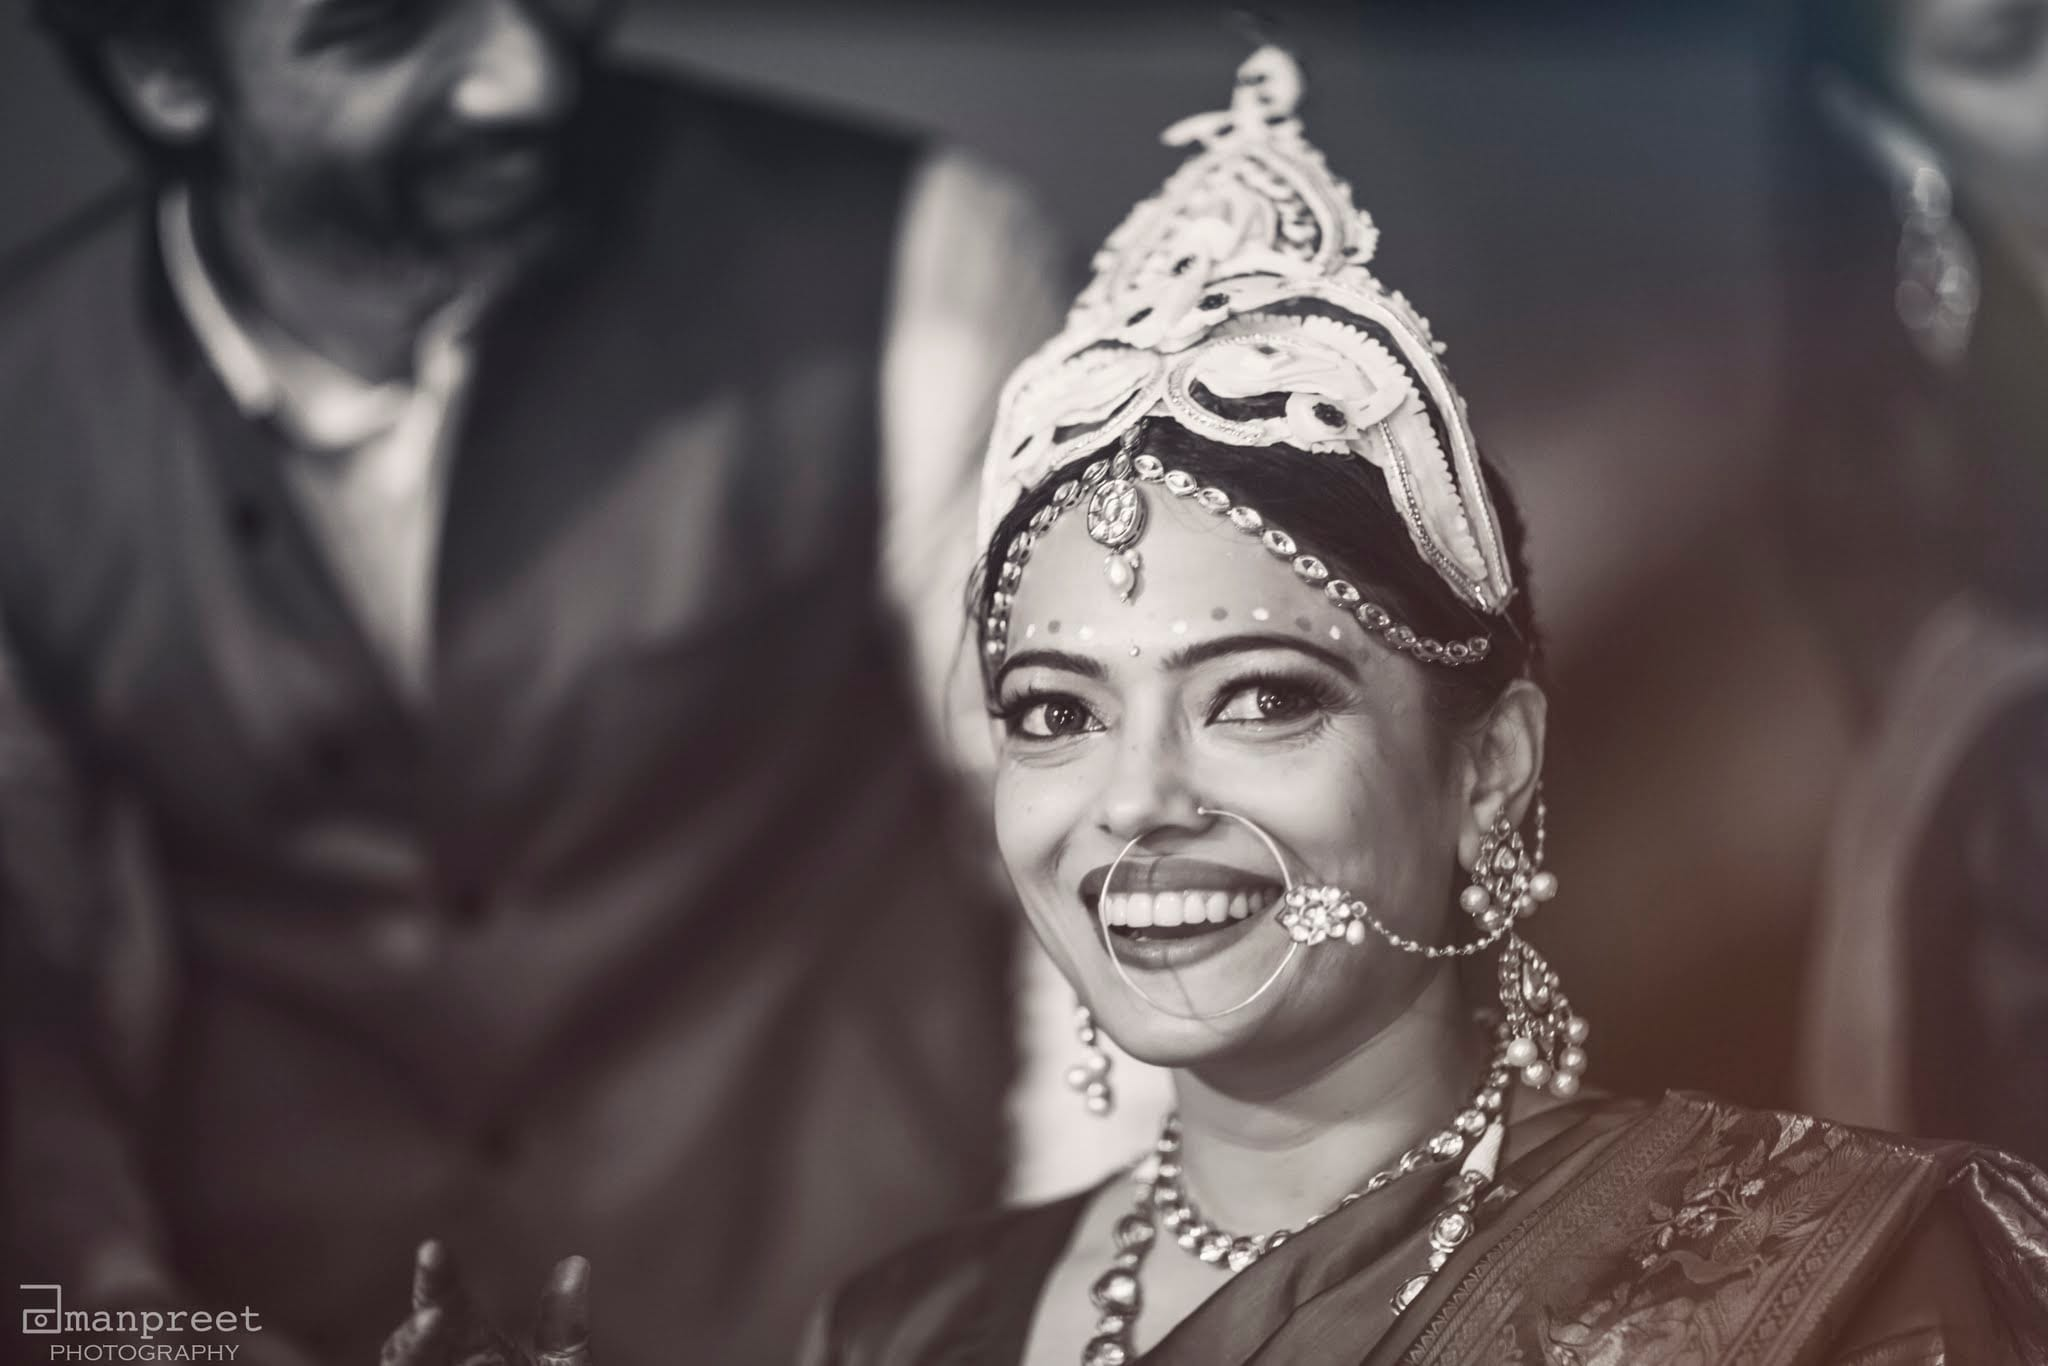 the bride tiya!:the umrao, mandira wirk, amanpreet photography, zorba